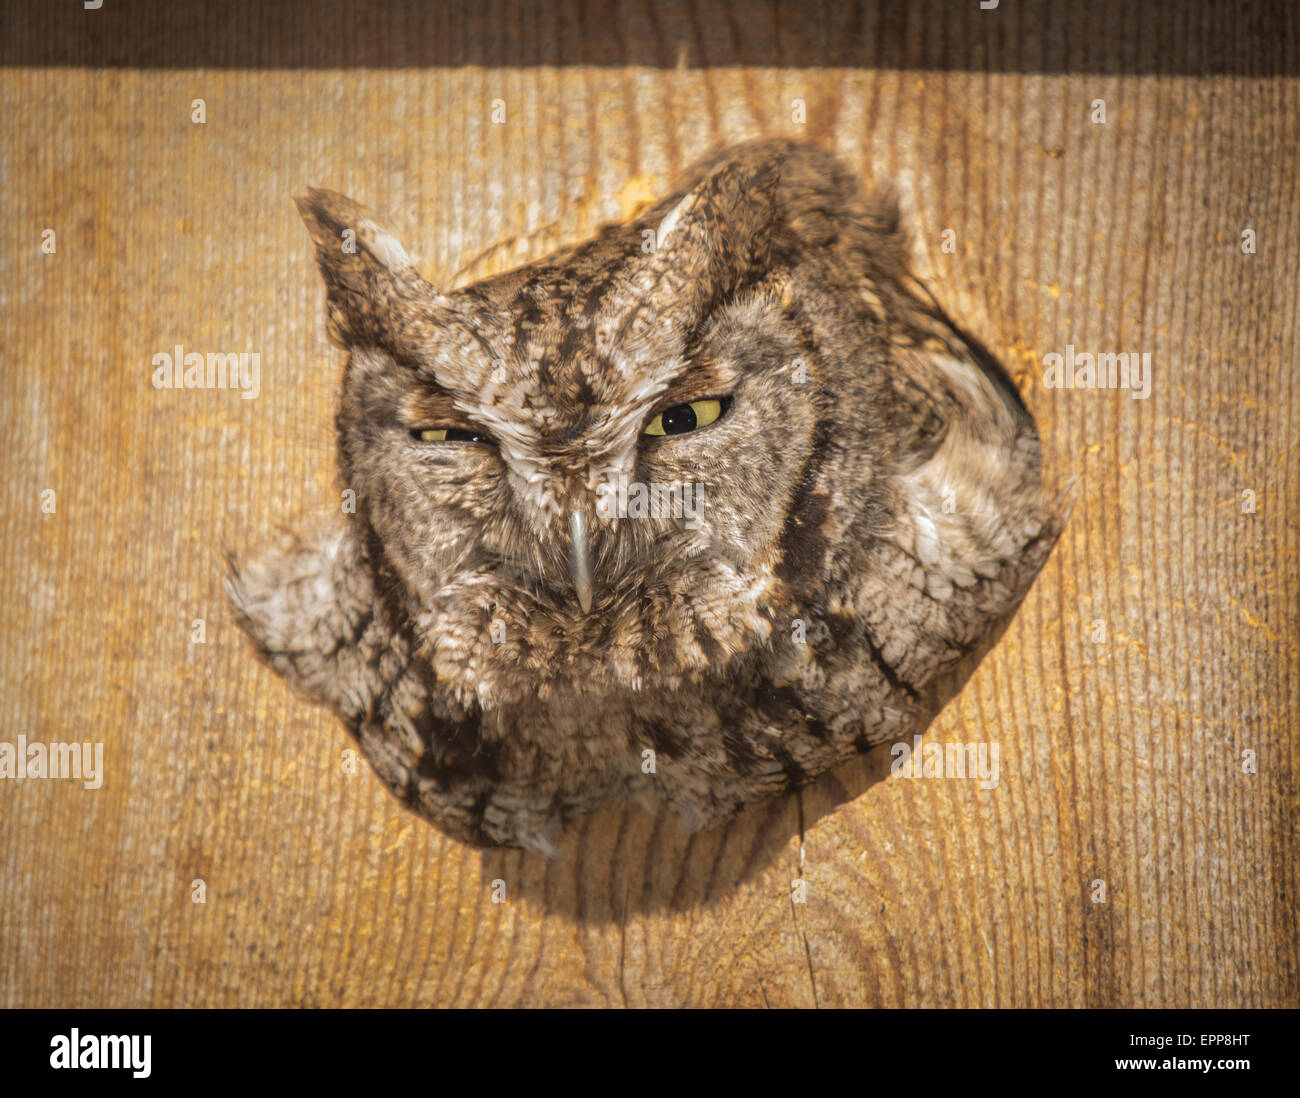 Screech Owl nesting and perched in a Wood Duck box.Boise,Idaho USA - Stock Image